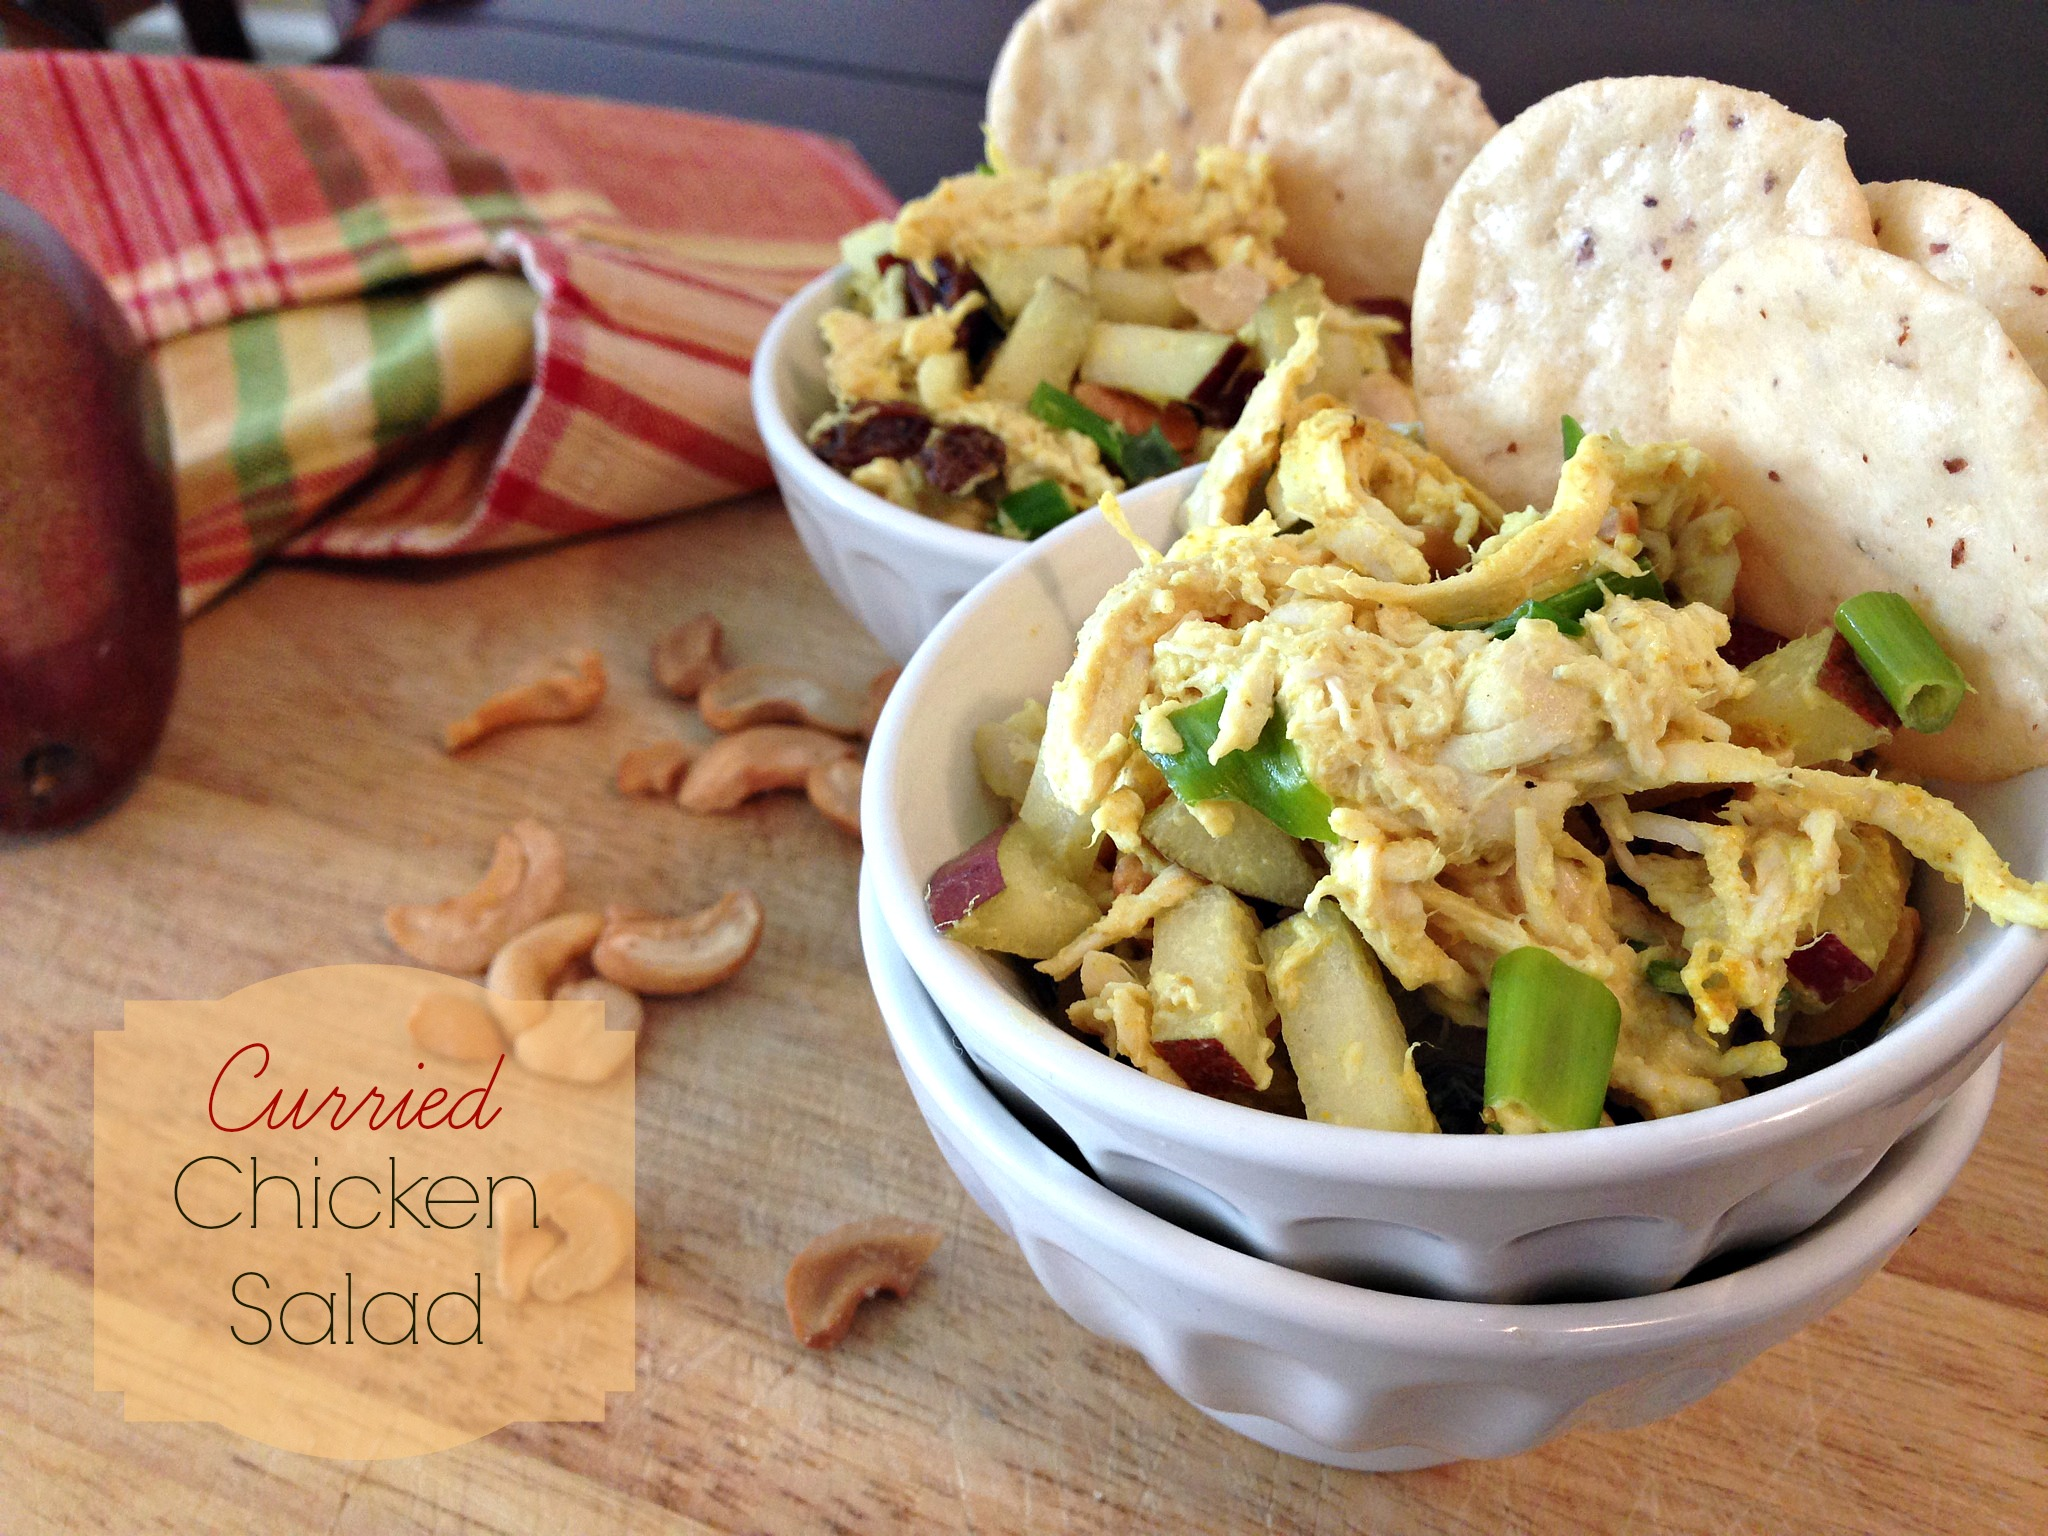 Low-Fat Curried Chicken Salad